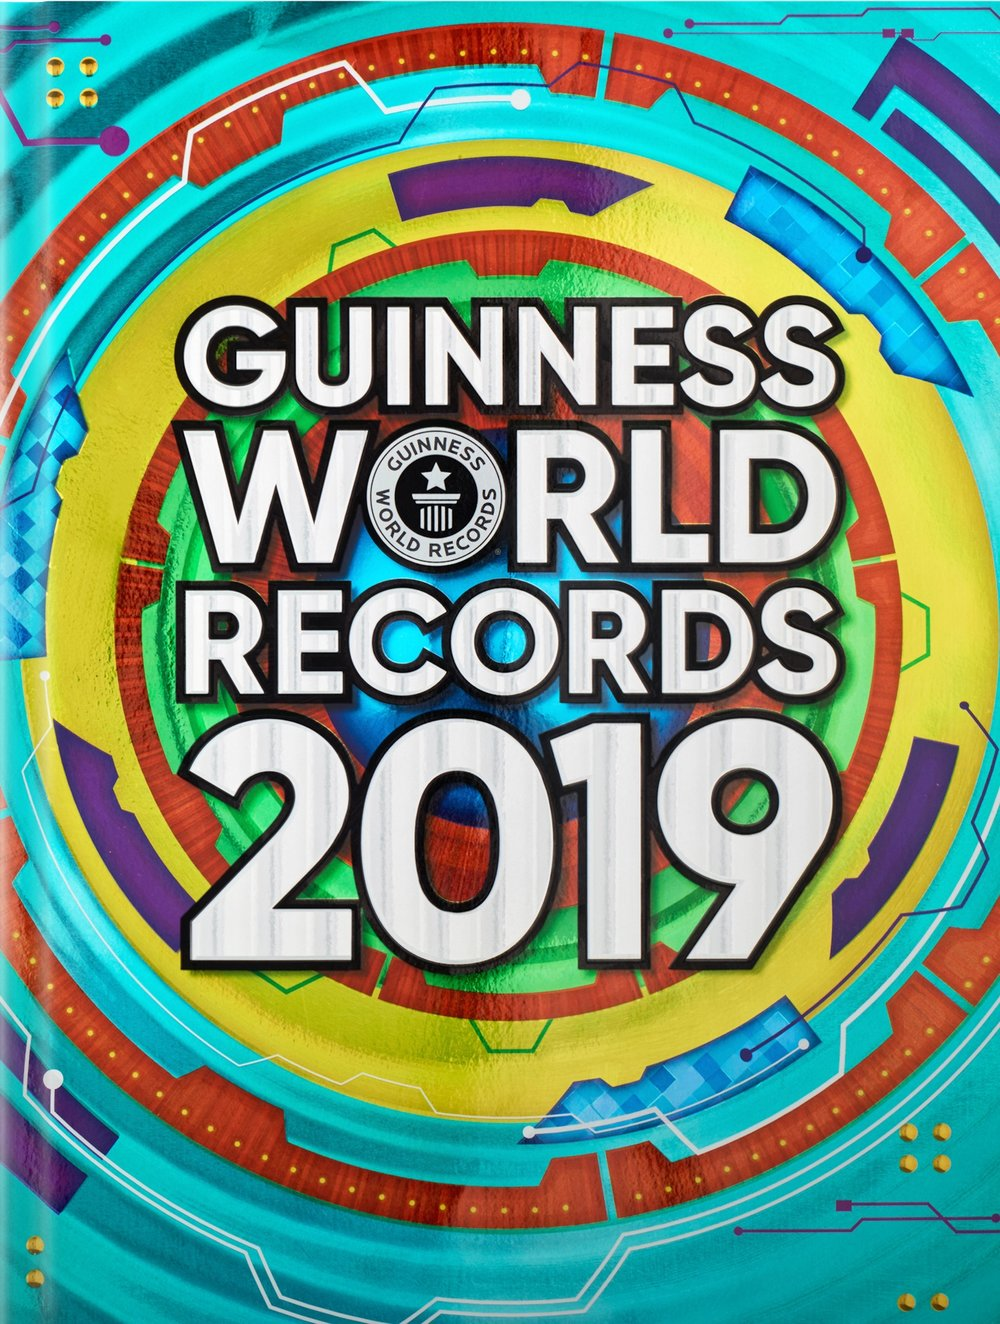 GUINNESS WORLD RECORDS 2019 -